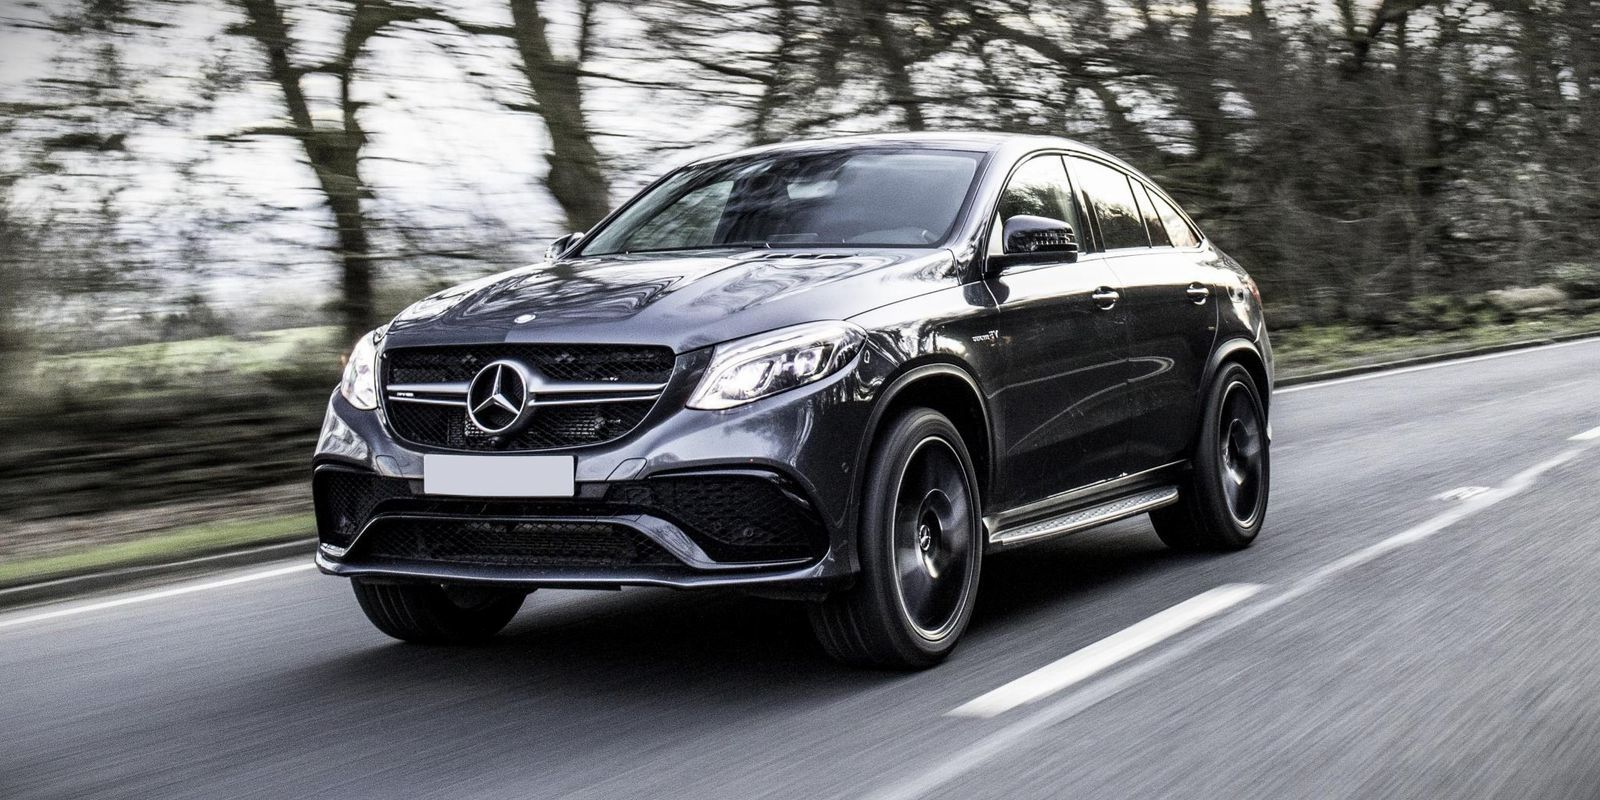 New Mercedes GLE - 2019 SUV Worth Waiting for